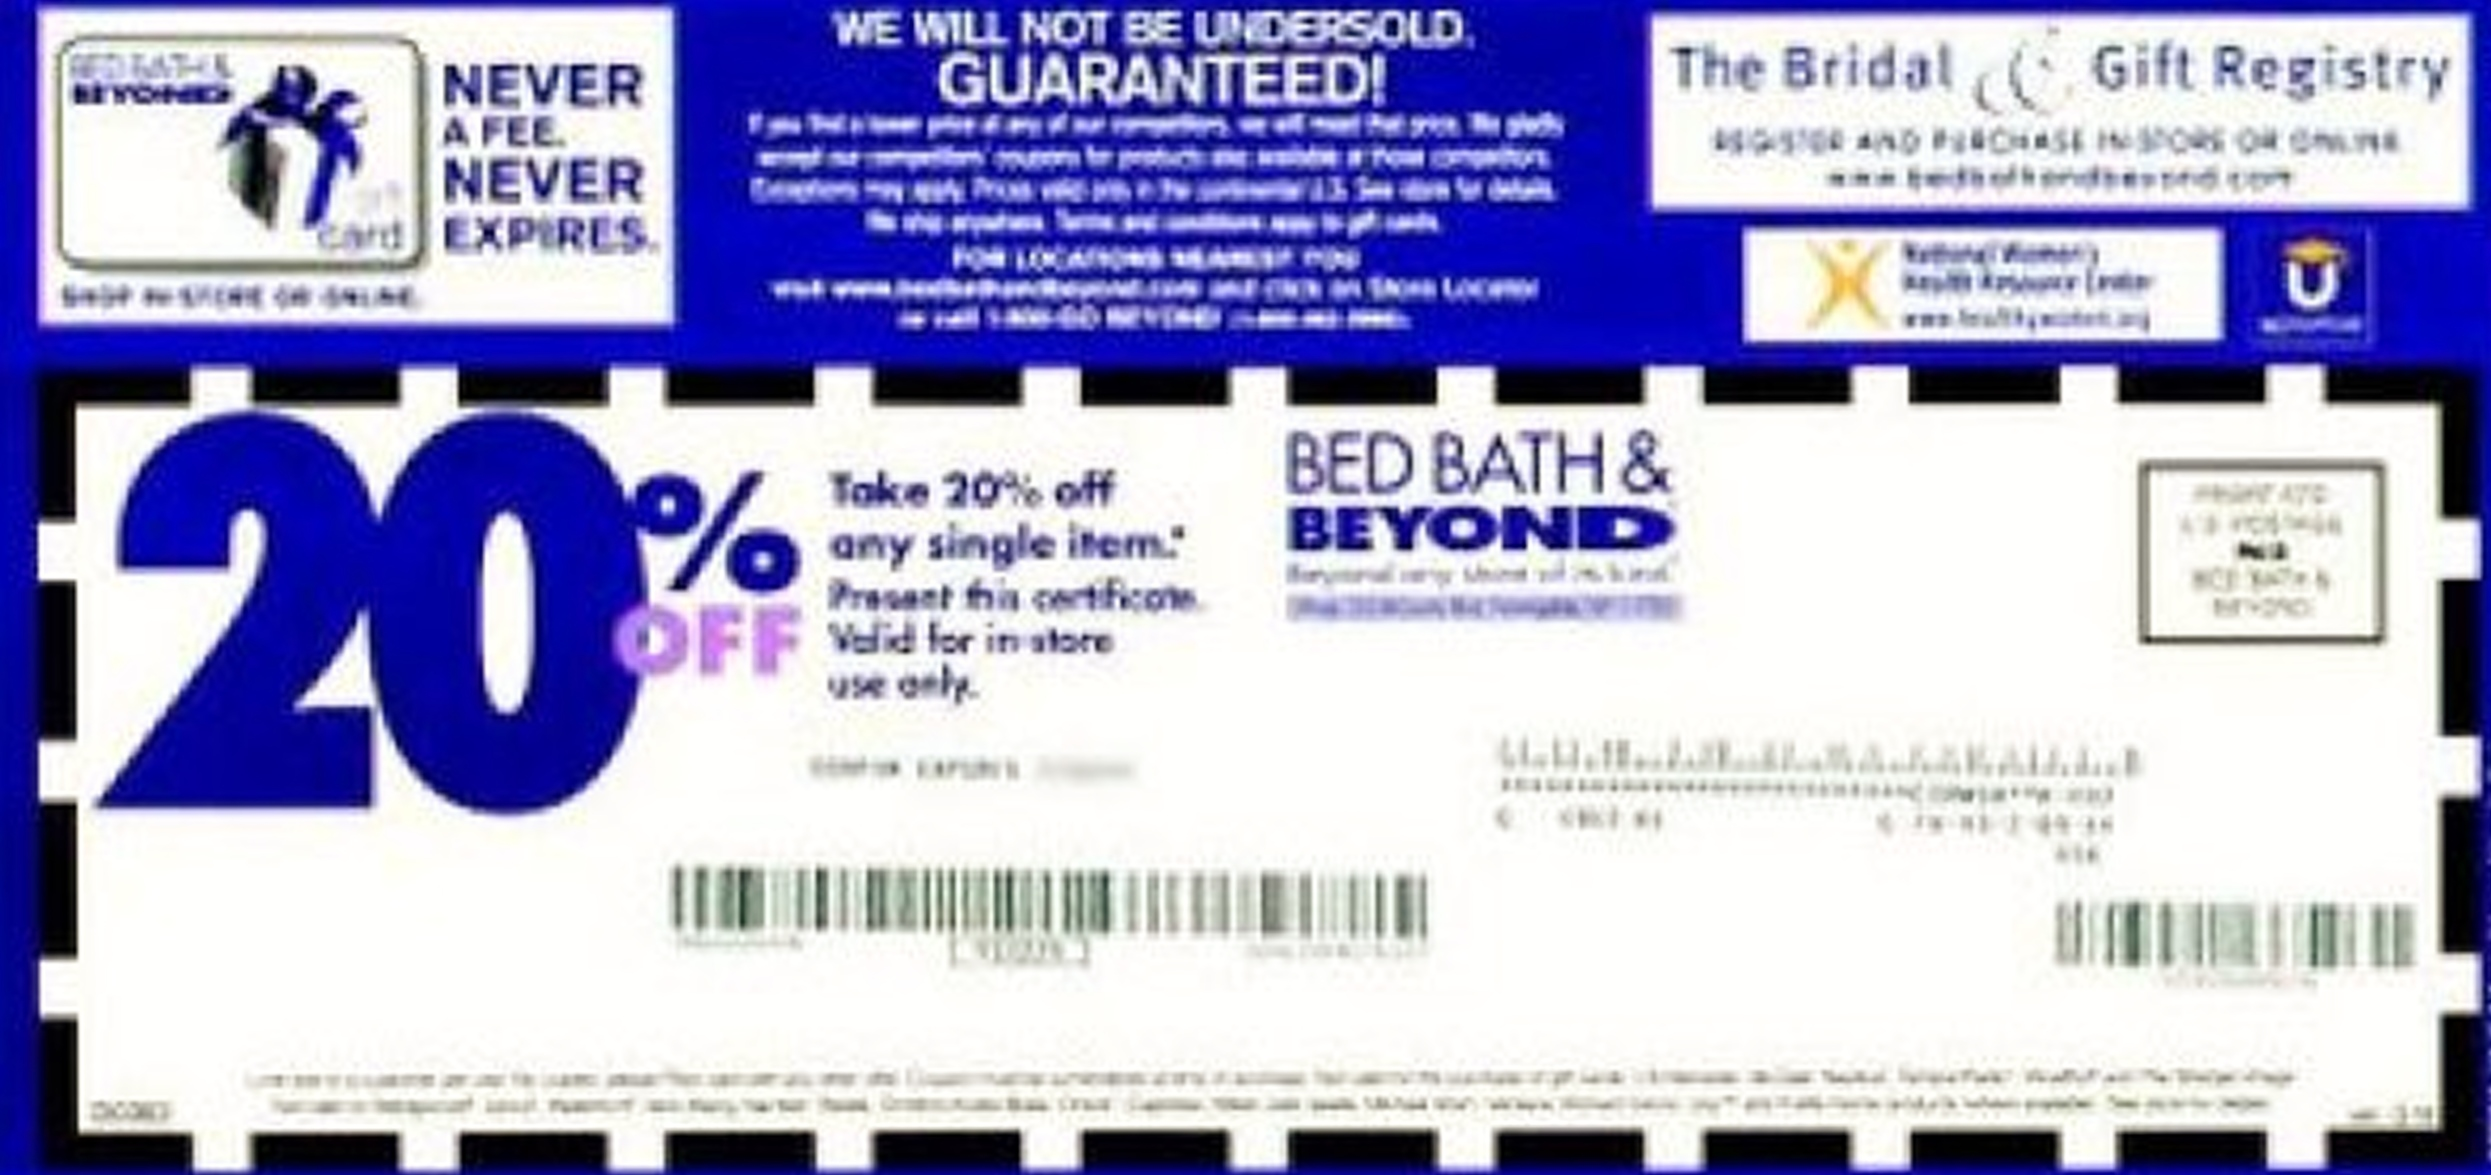 20% BBB Coupon Through Facebook Printable In Store: Get a 20% printable coupon for bed bath and beyond through their facebook page. First time email subscribers get a .